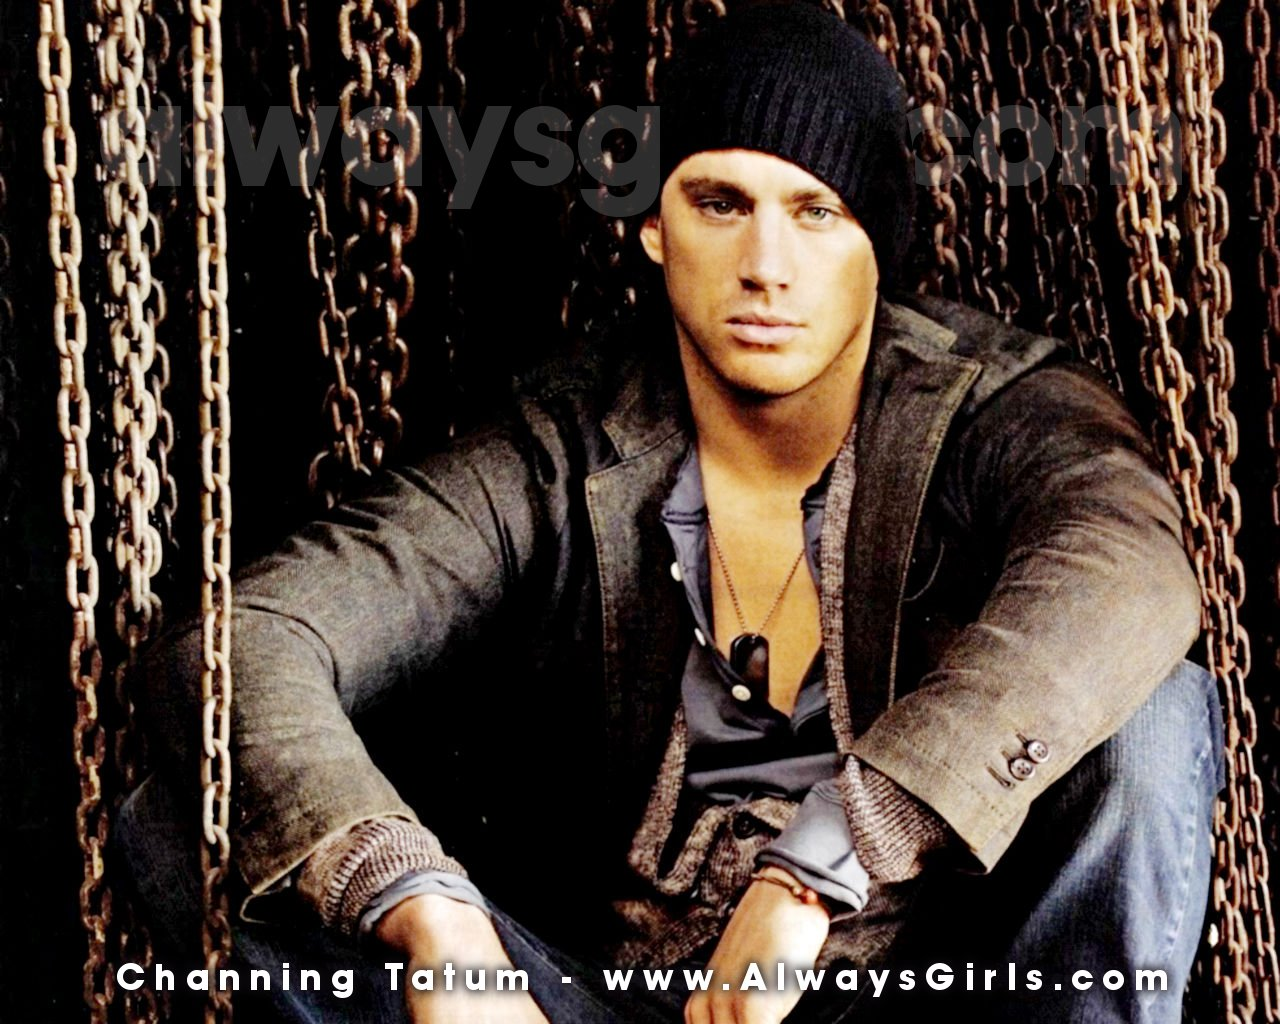 channing tatum channing tatum wallpaper 28531583 fanpop